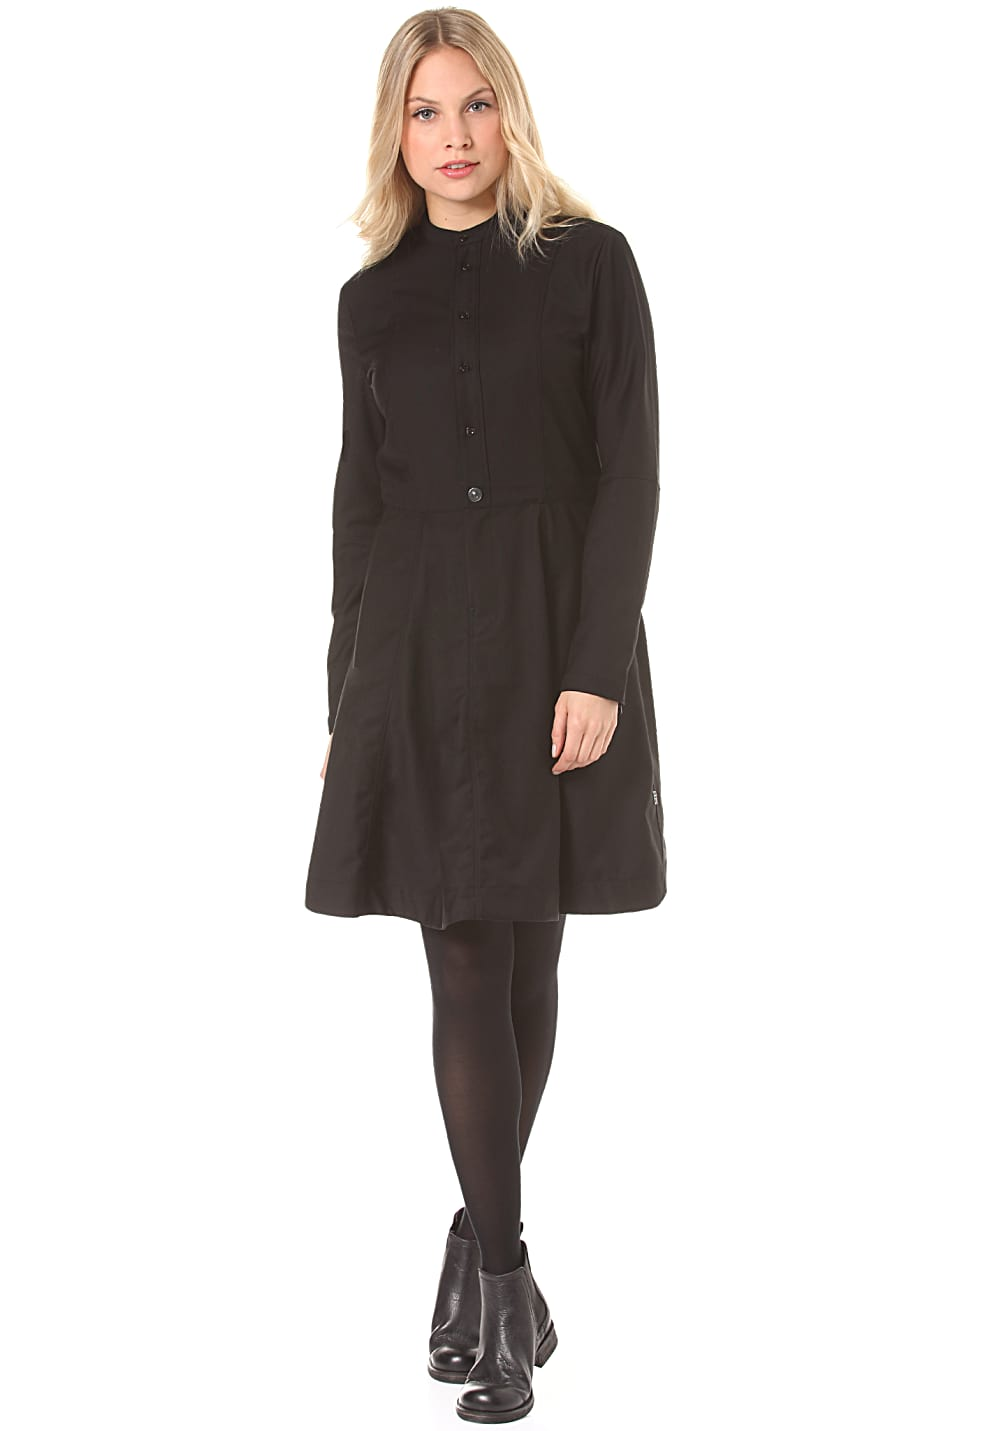 G-Star Core Flare Dress L/S Moncton Twill - Kleid für Damen - Schwarz